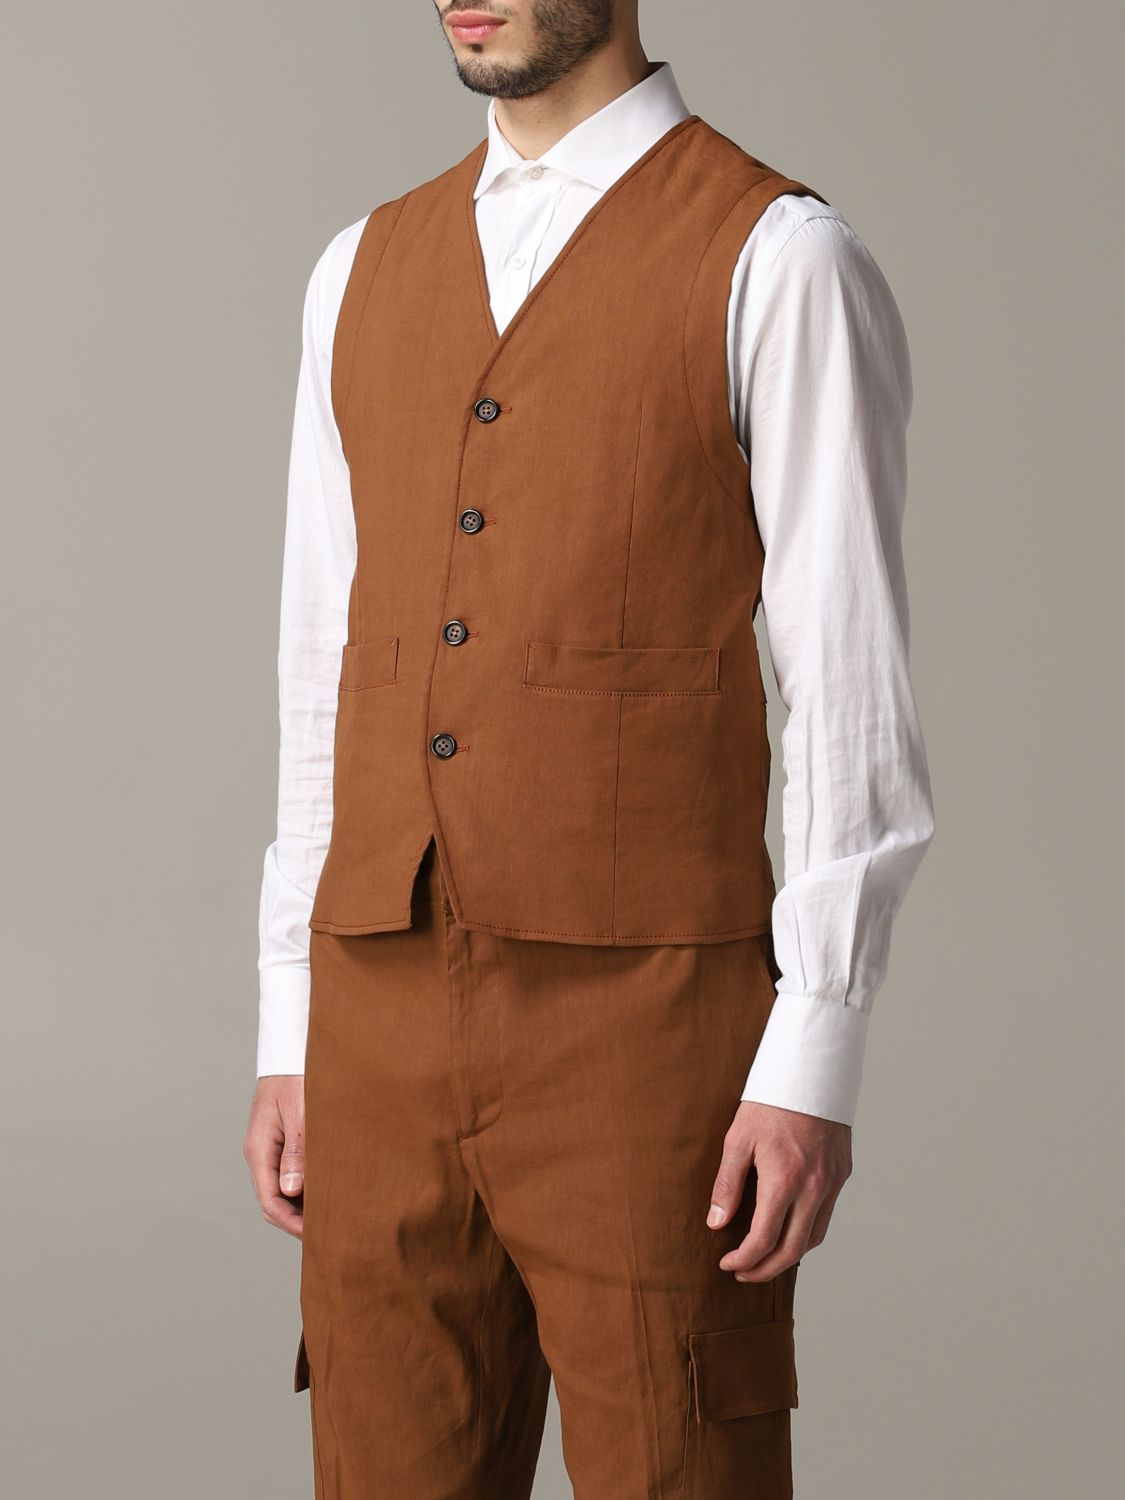 Suit vest men Paolo Pecora leather 4